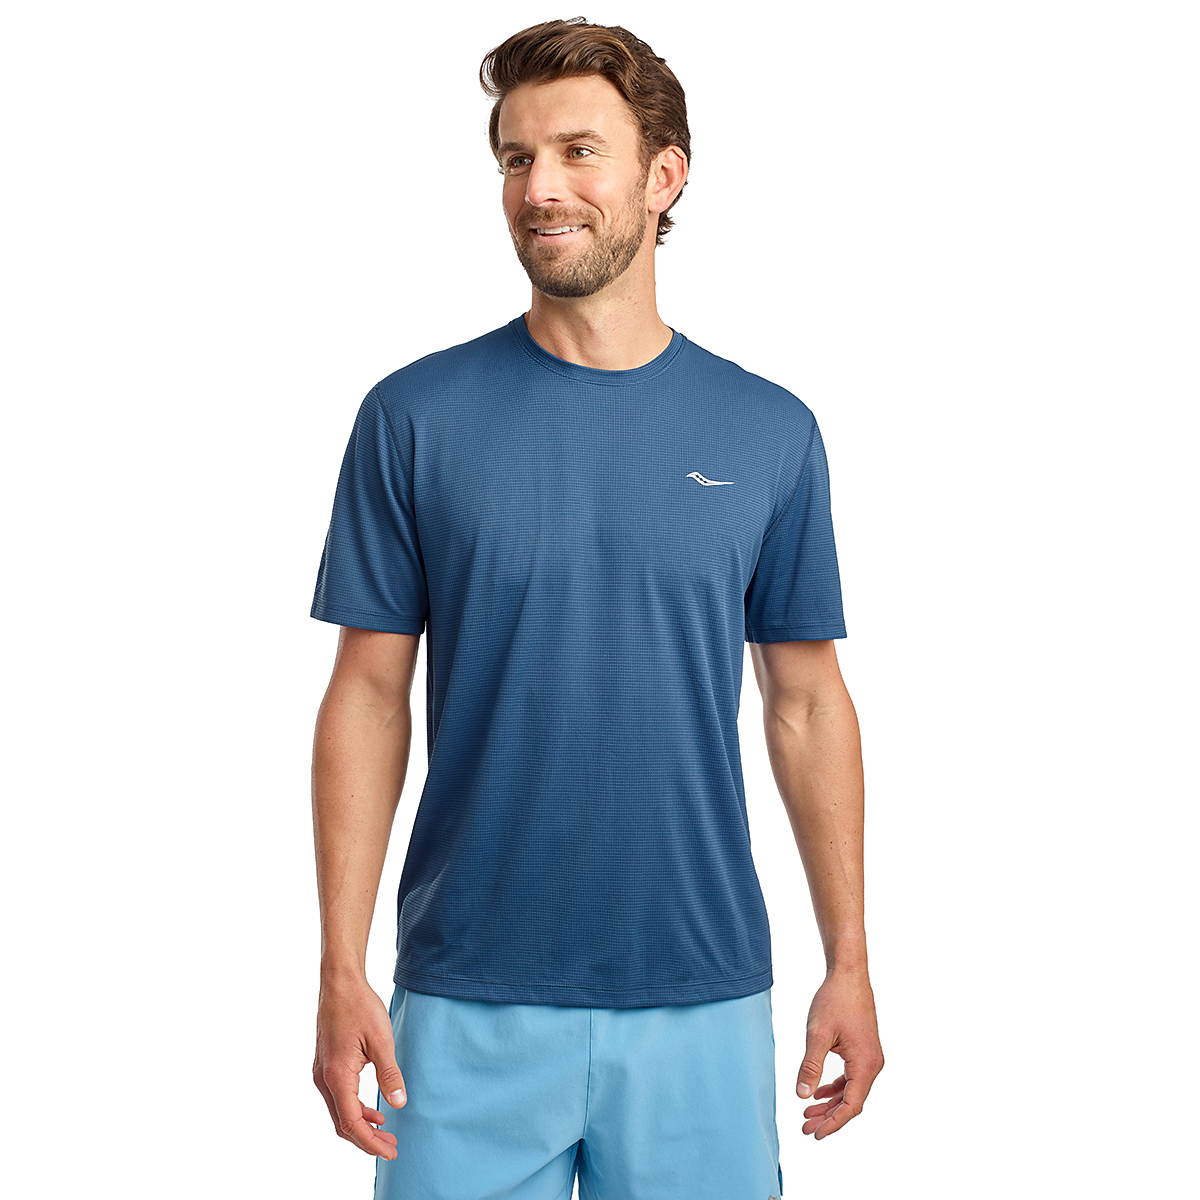 Men's Saucony Stopwatch Short Sleeve - Color: Ensign Blue - Size: S, Ensign Blue, large, image 1